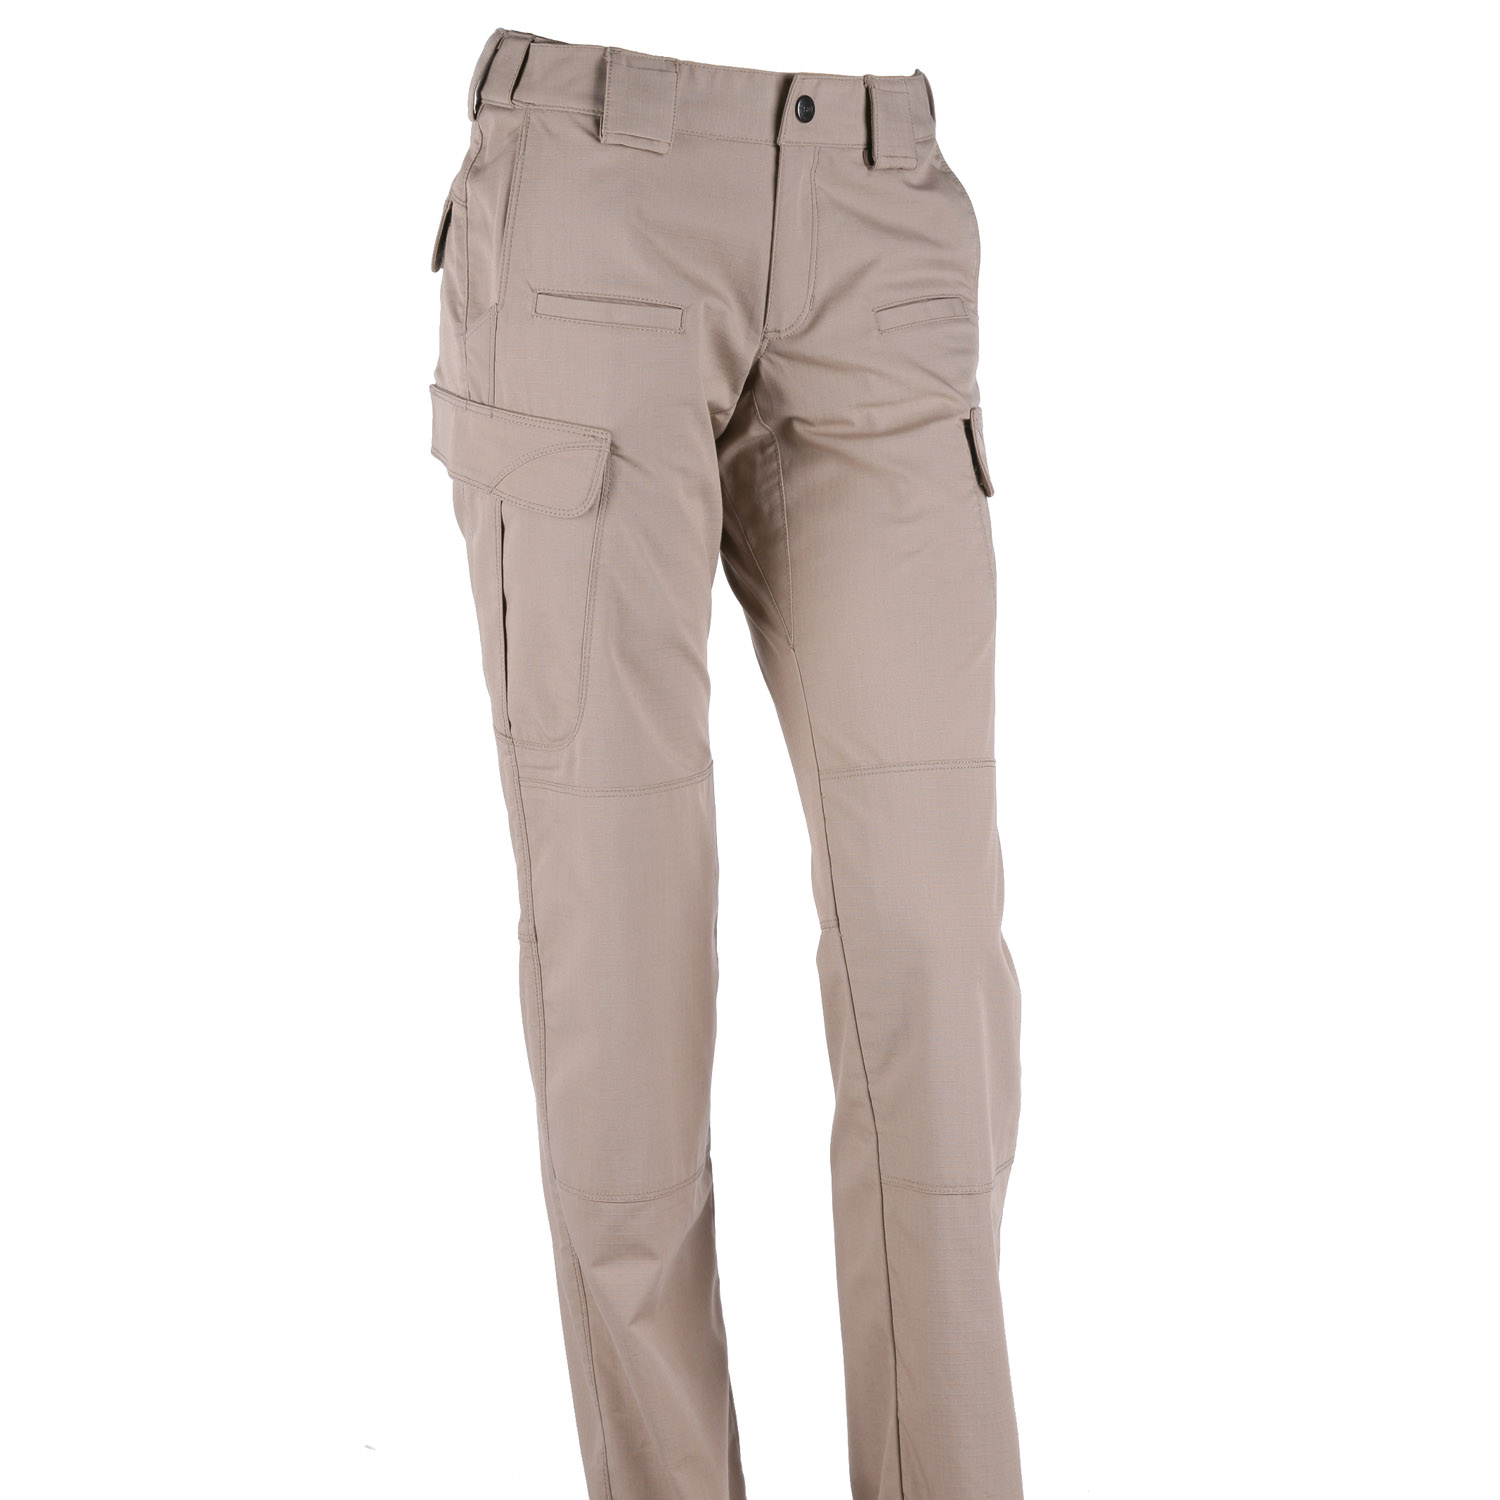 womens tactical pants photo - 1